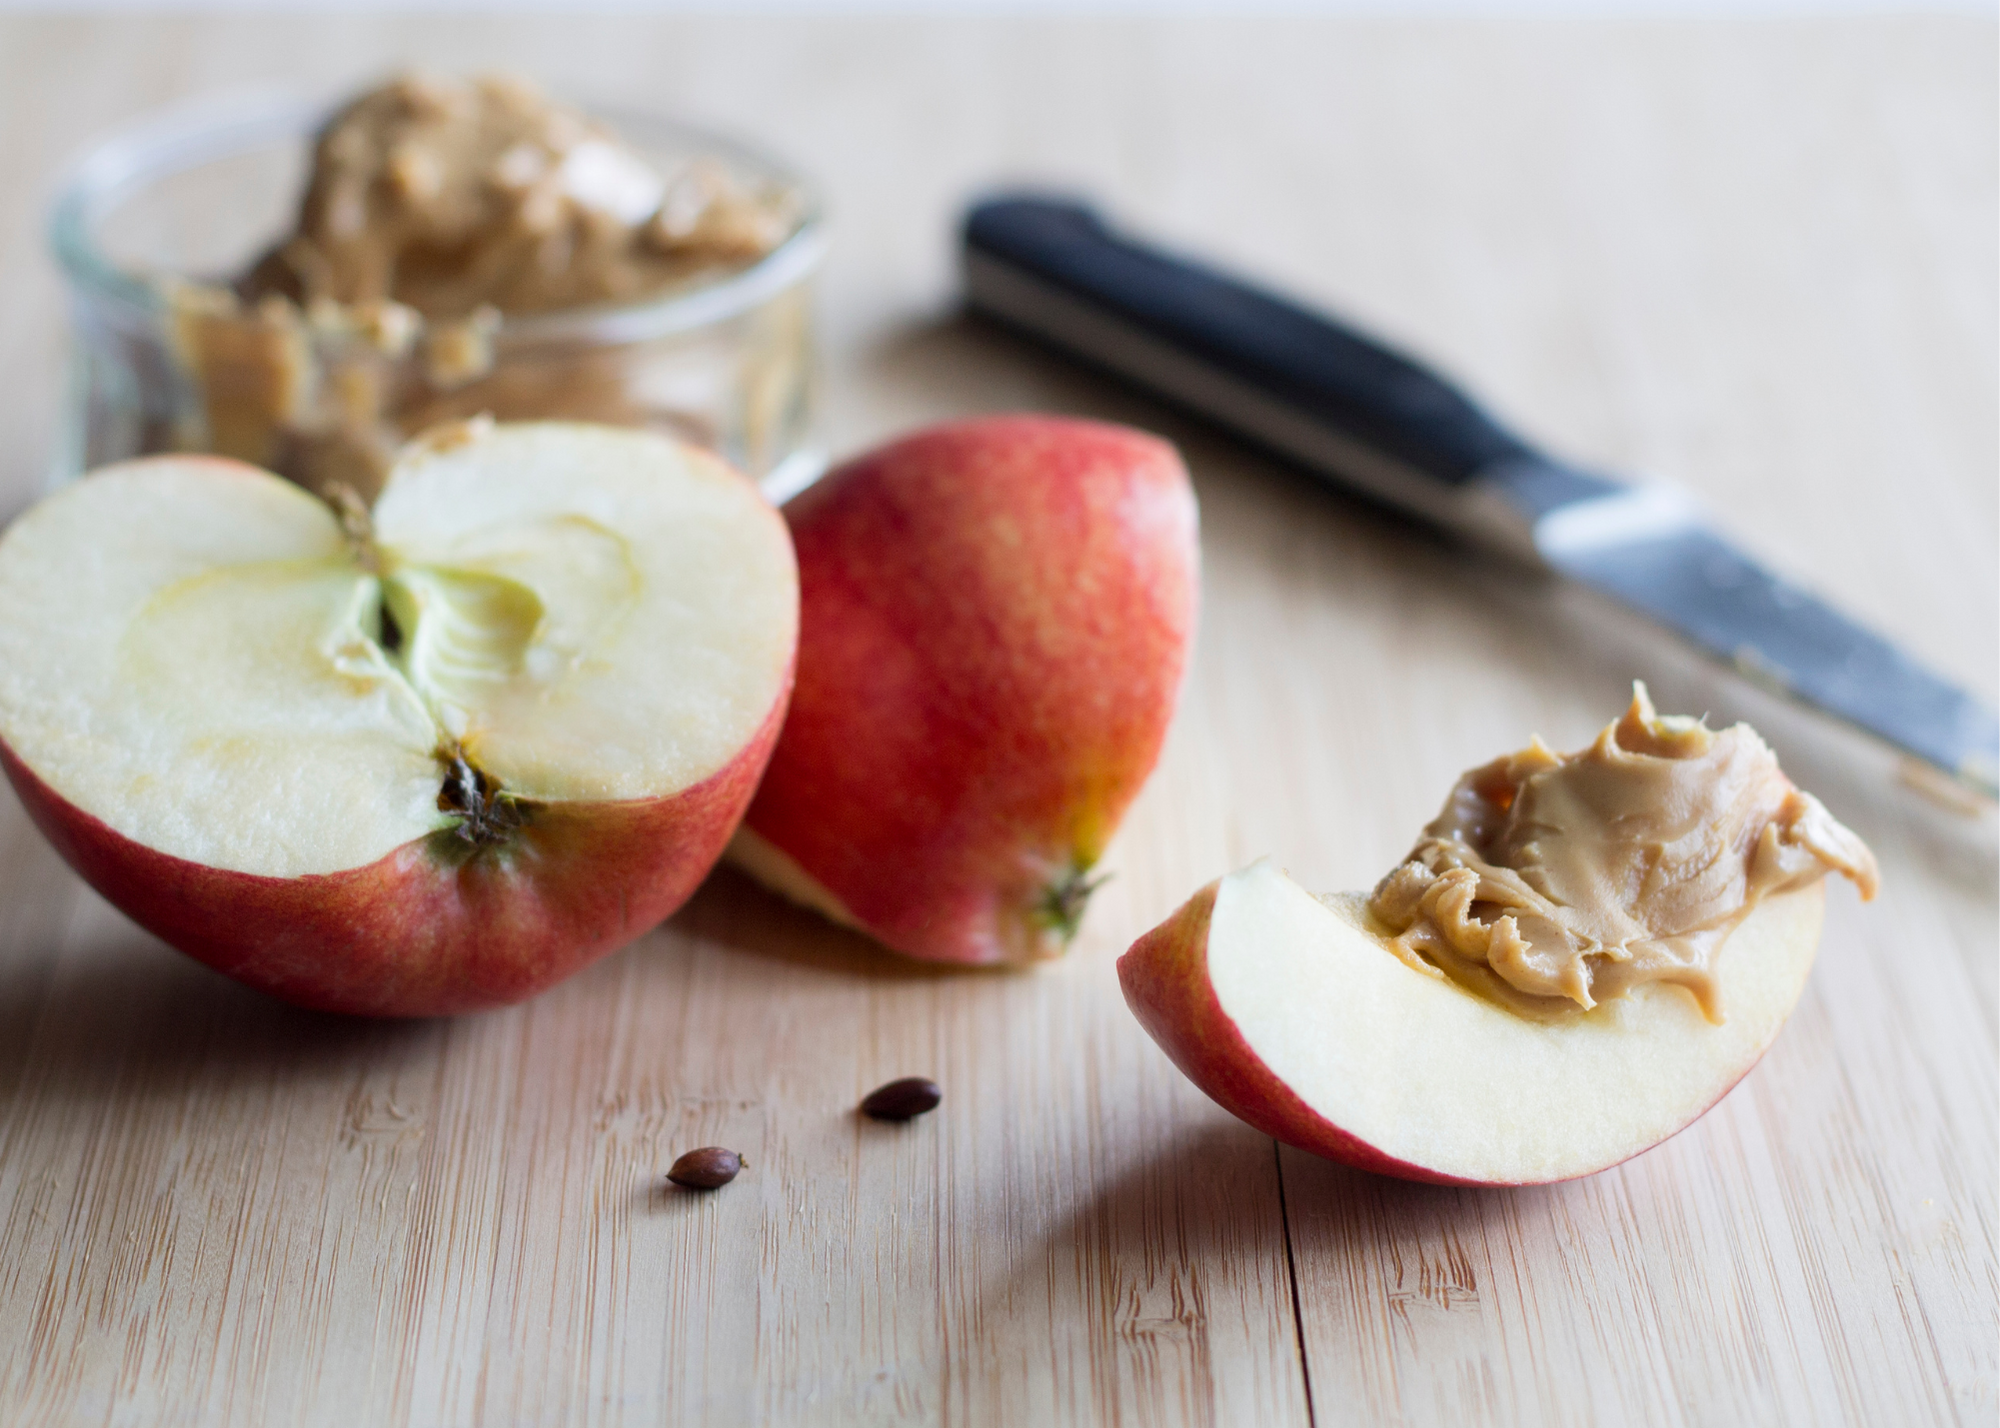 low calorie snack ideas, healthy recipes, losing weight, apples peanut butter, wood cutting board, red apple